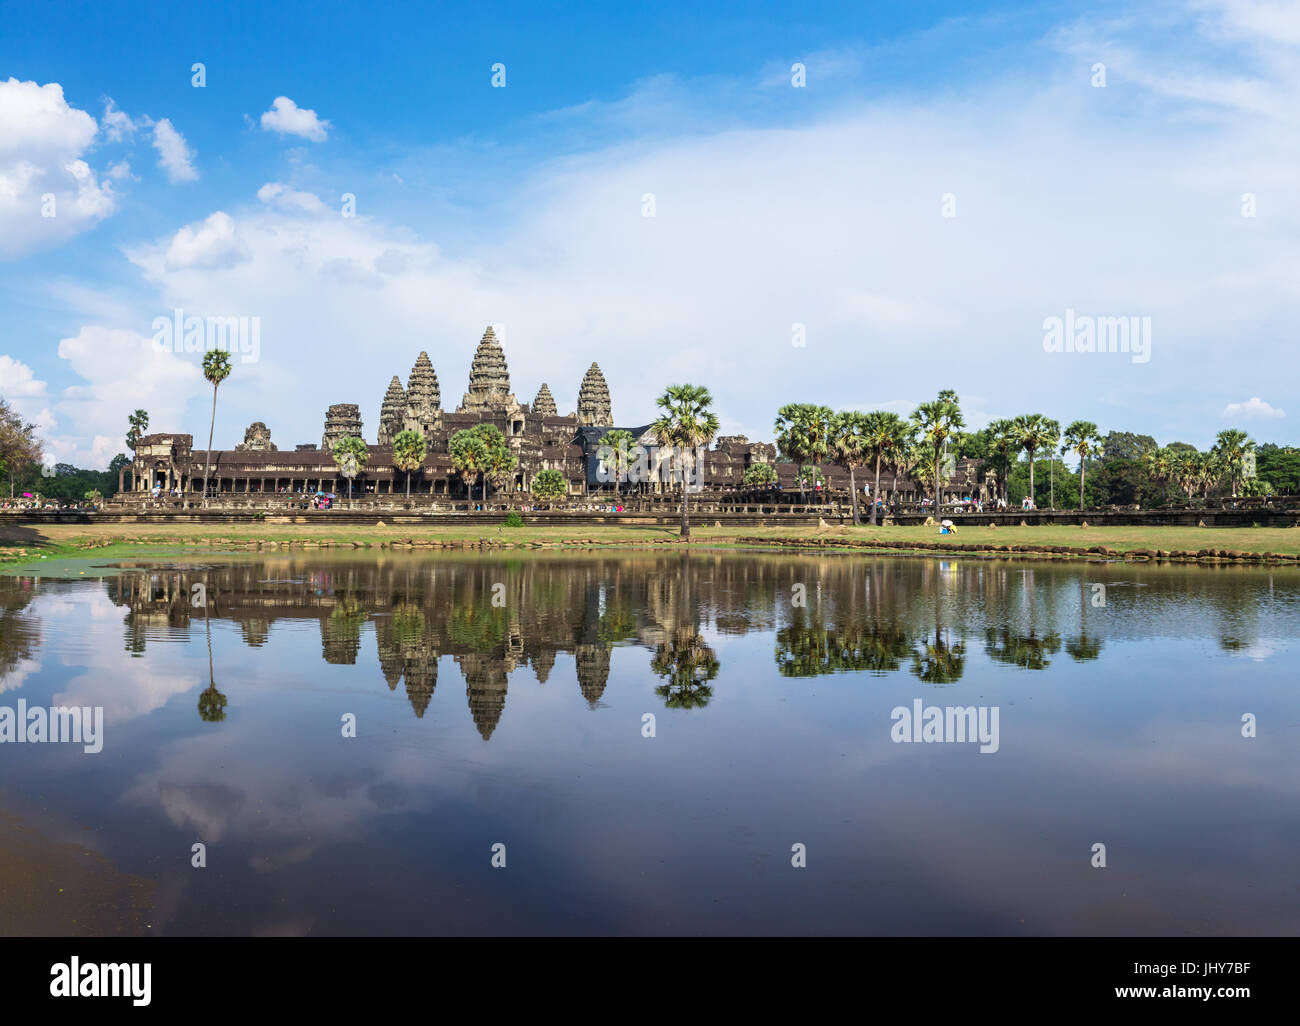 Angkor Wat day time reflection on the lake panorama - Stock Image